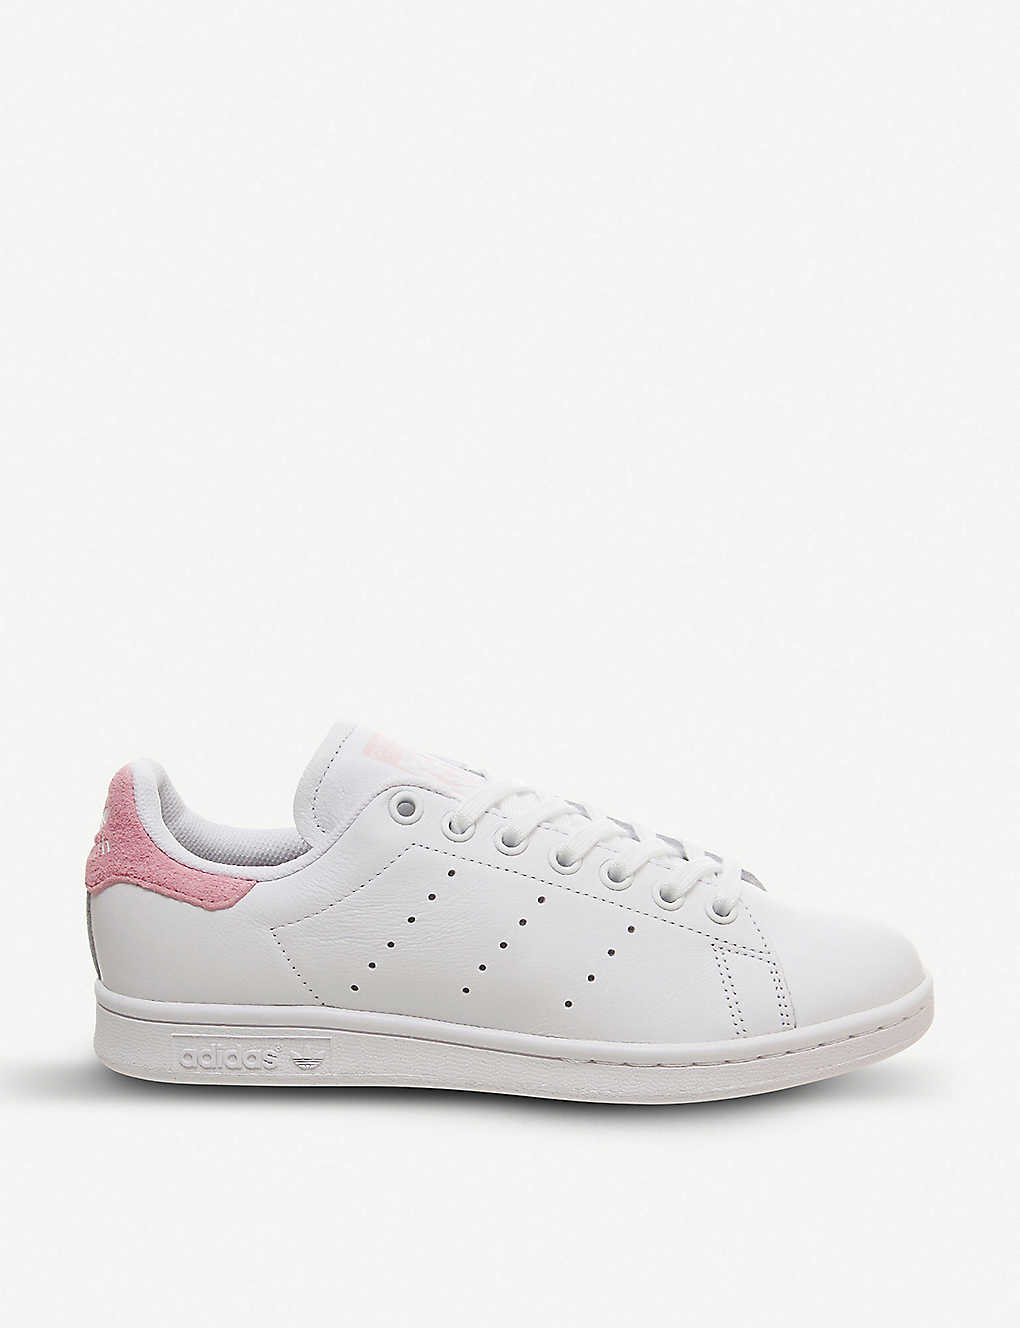 ADIDAS Stan Smith leather trainers |